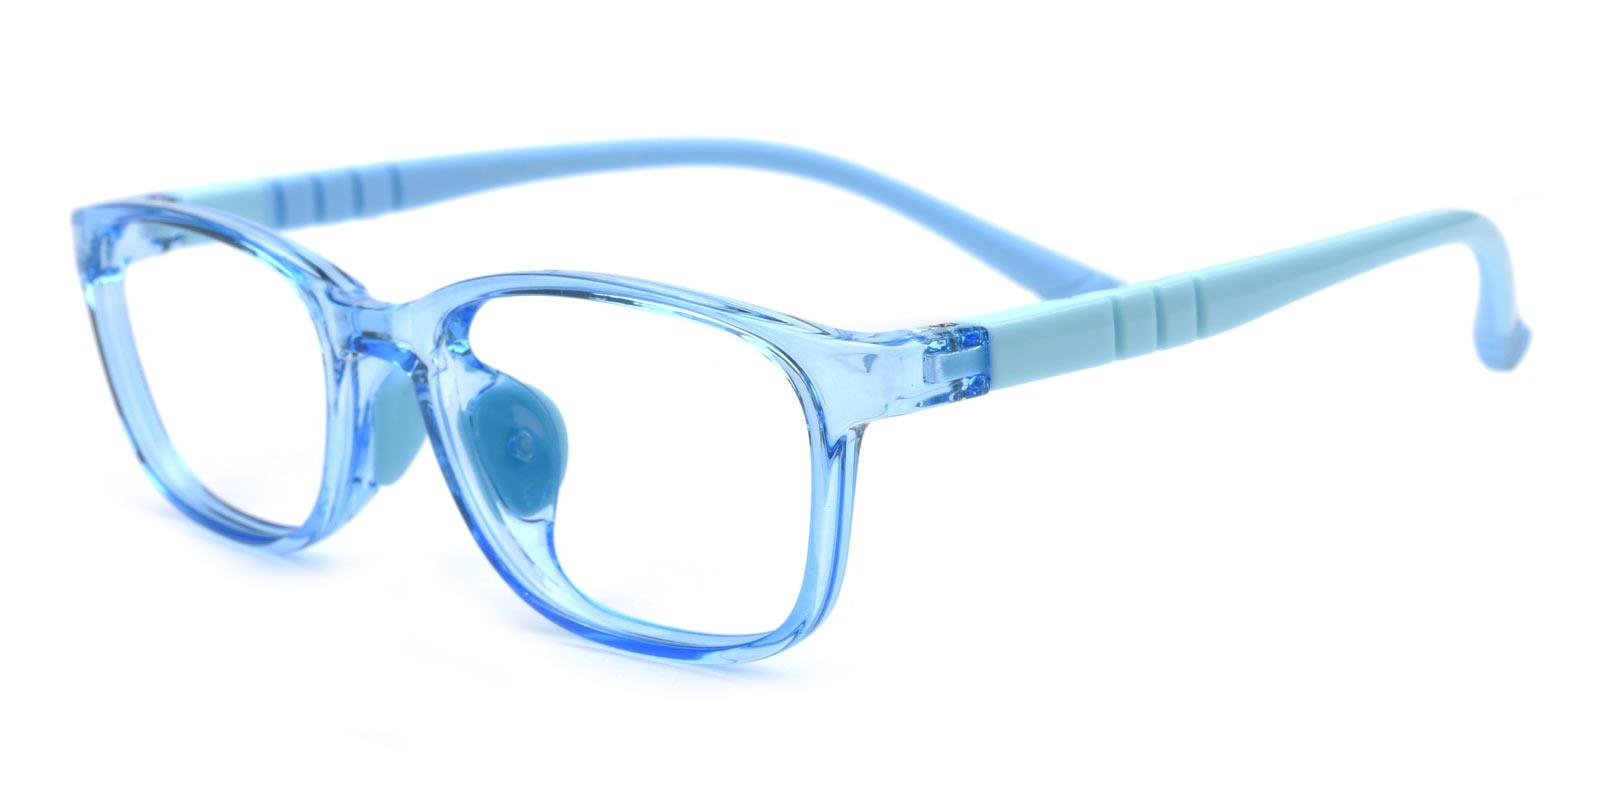 Adward-Blue-Rectangle-Combination-Eyeglasses-additional1